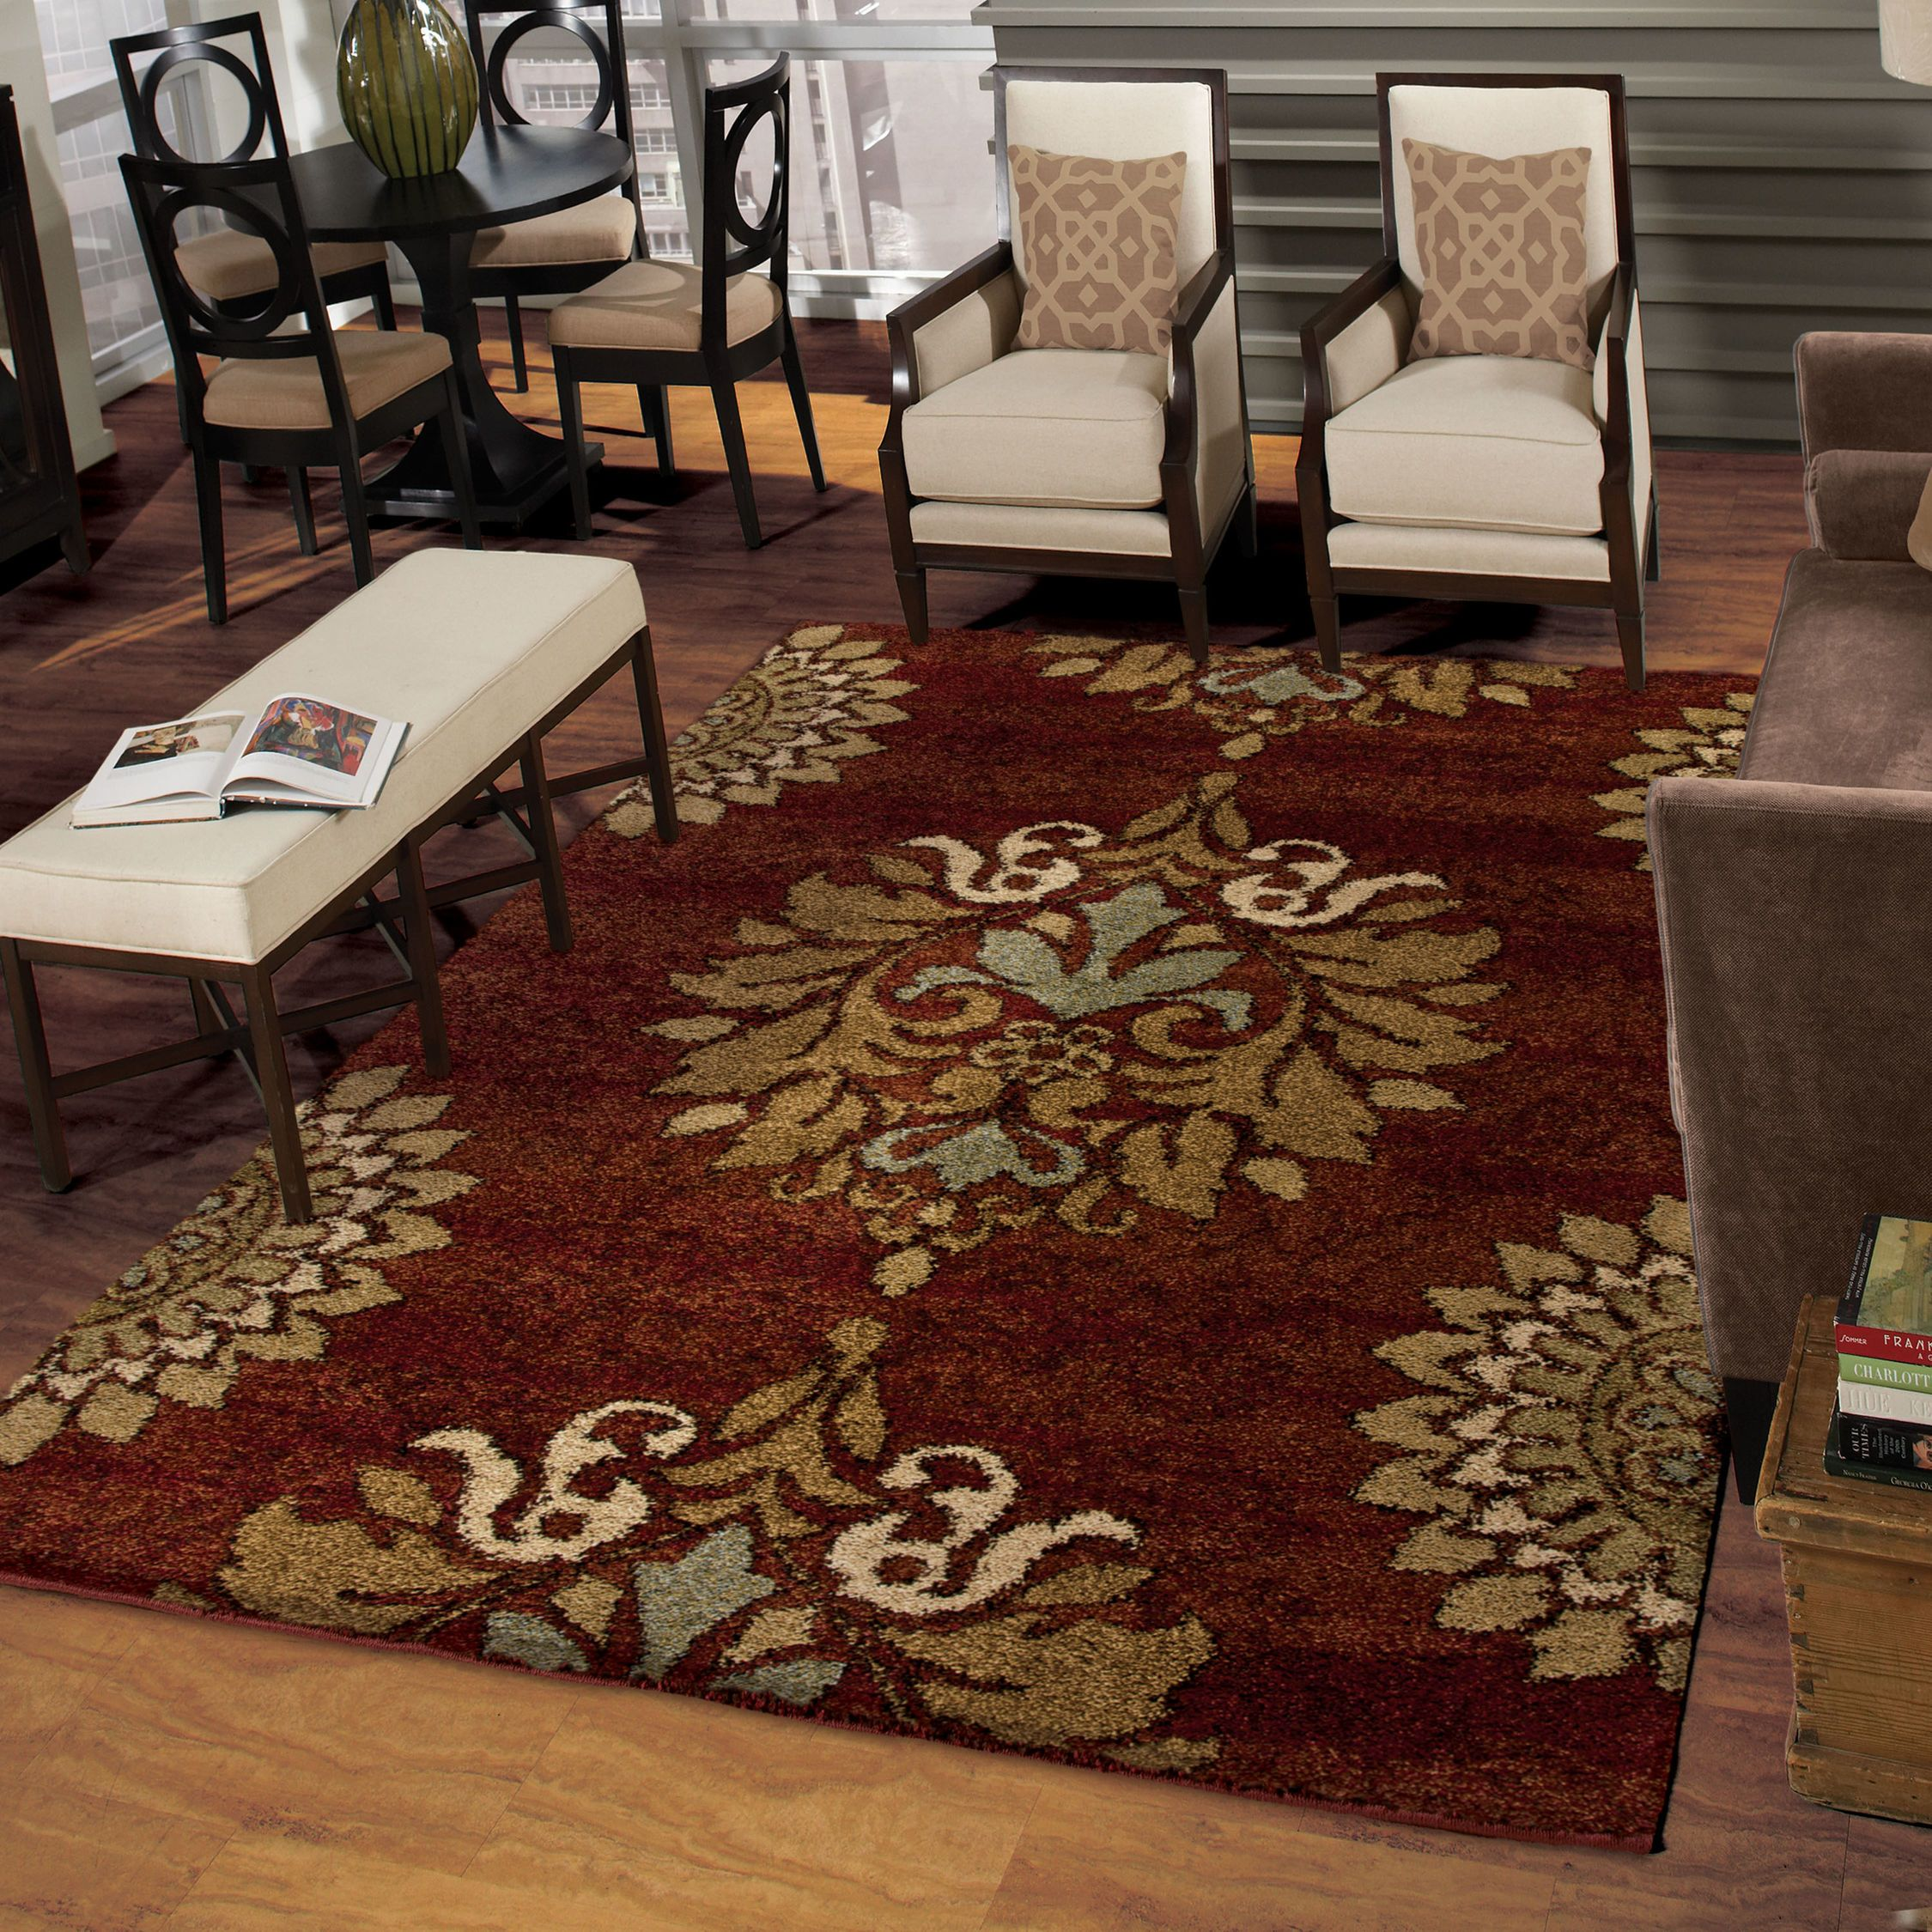 Jacquline Color Rouge Size 7 10 X 10 10 Area Rugs Plush Area Rugs Orian Rugs